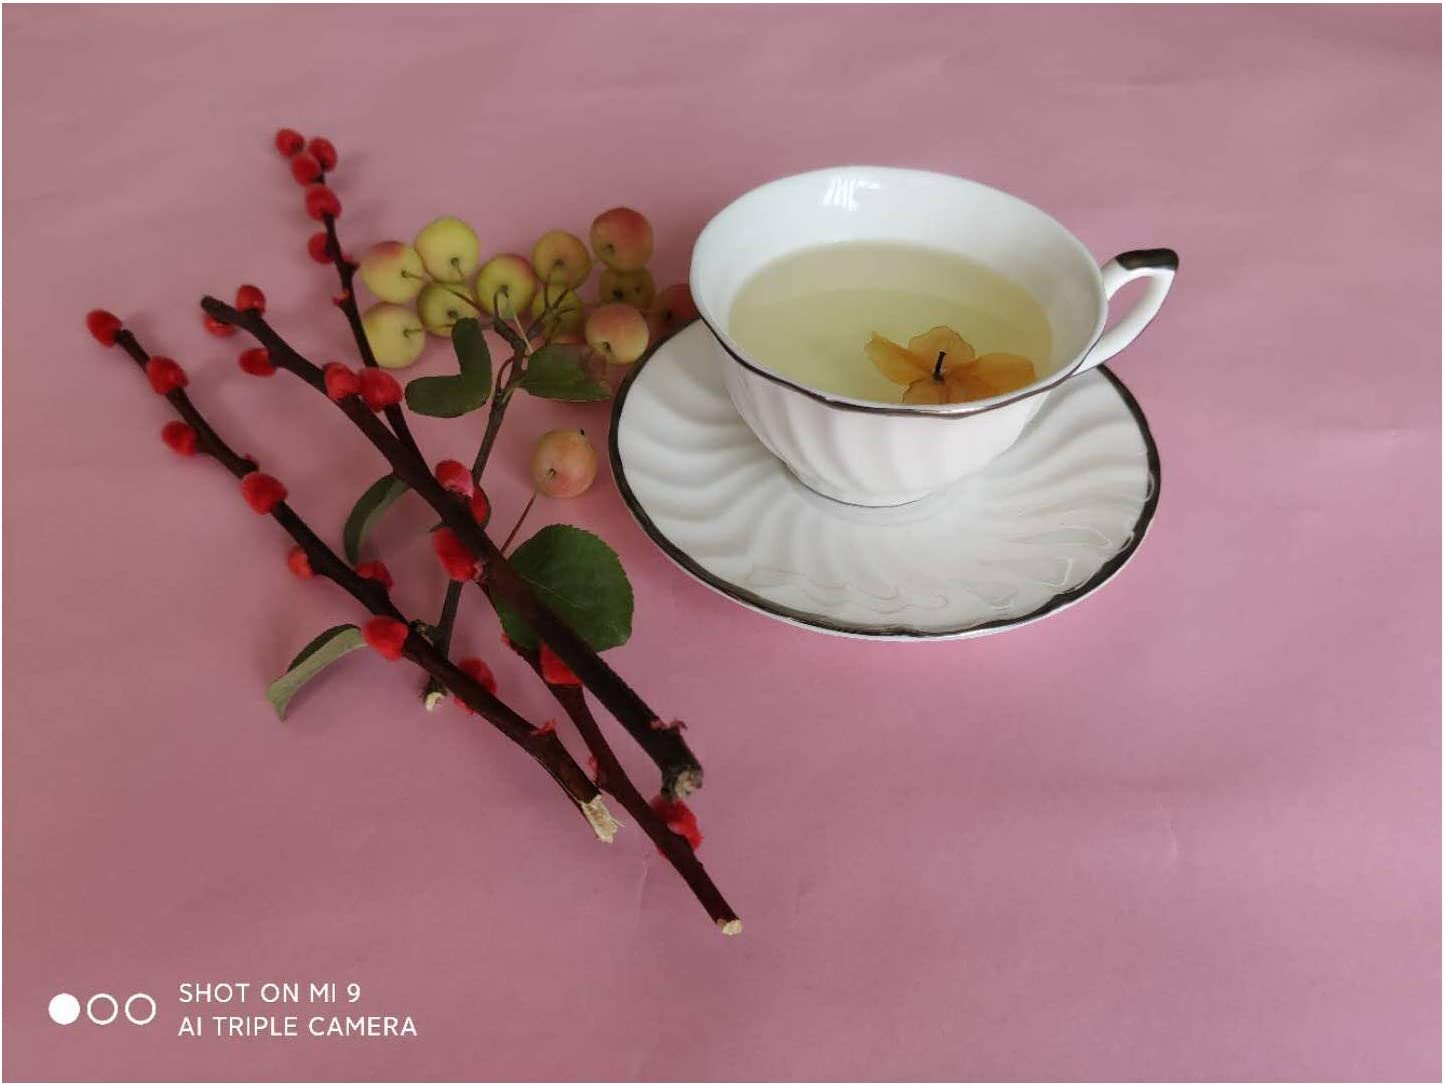 GoShuang Bone China Coffee Cup and Saucer Set Ripple Cup Body Plate Simple Black Gold Trim Milky White Tea Cup Office Cup